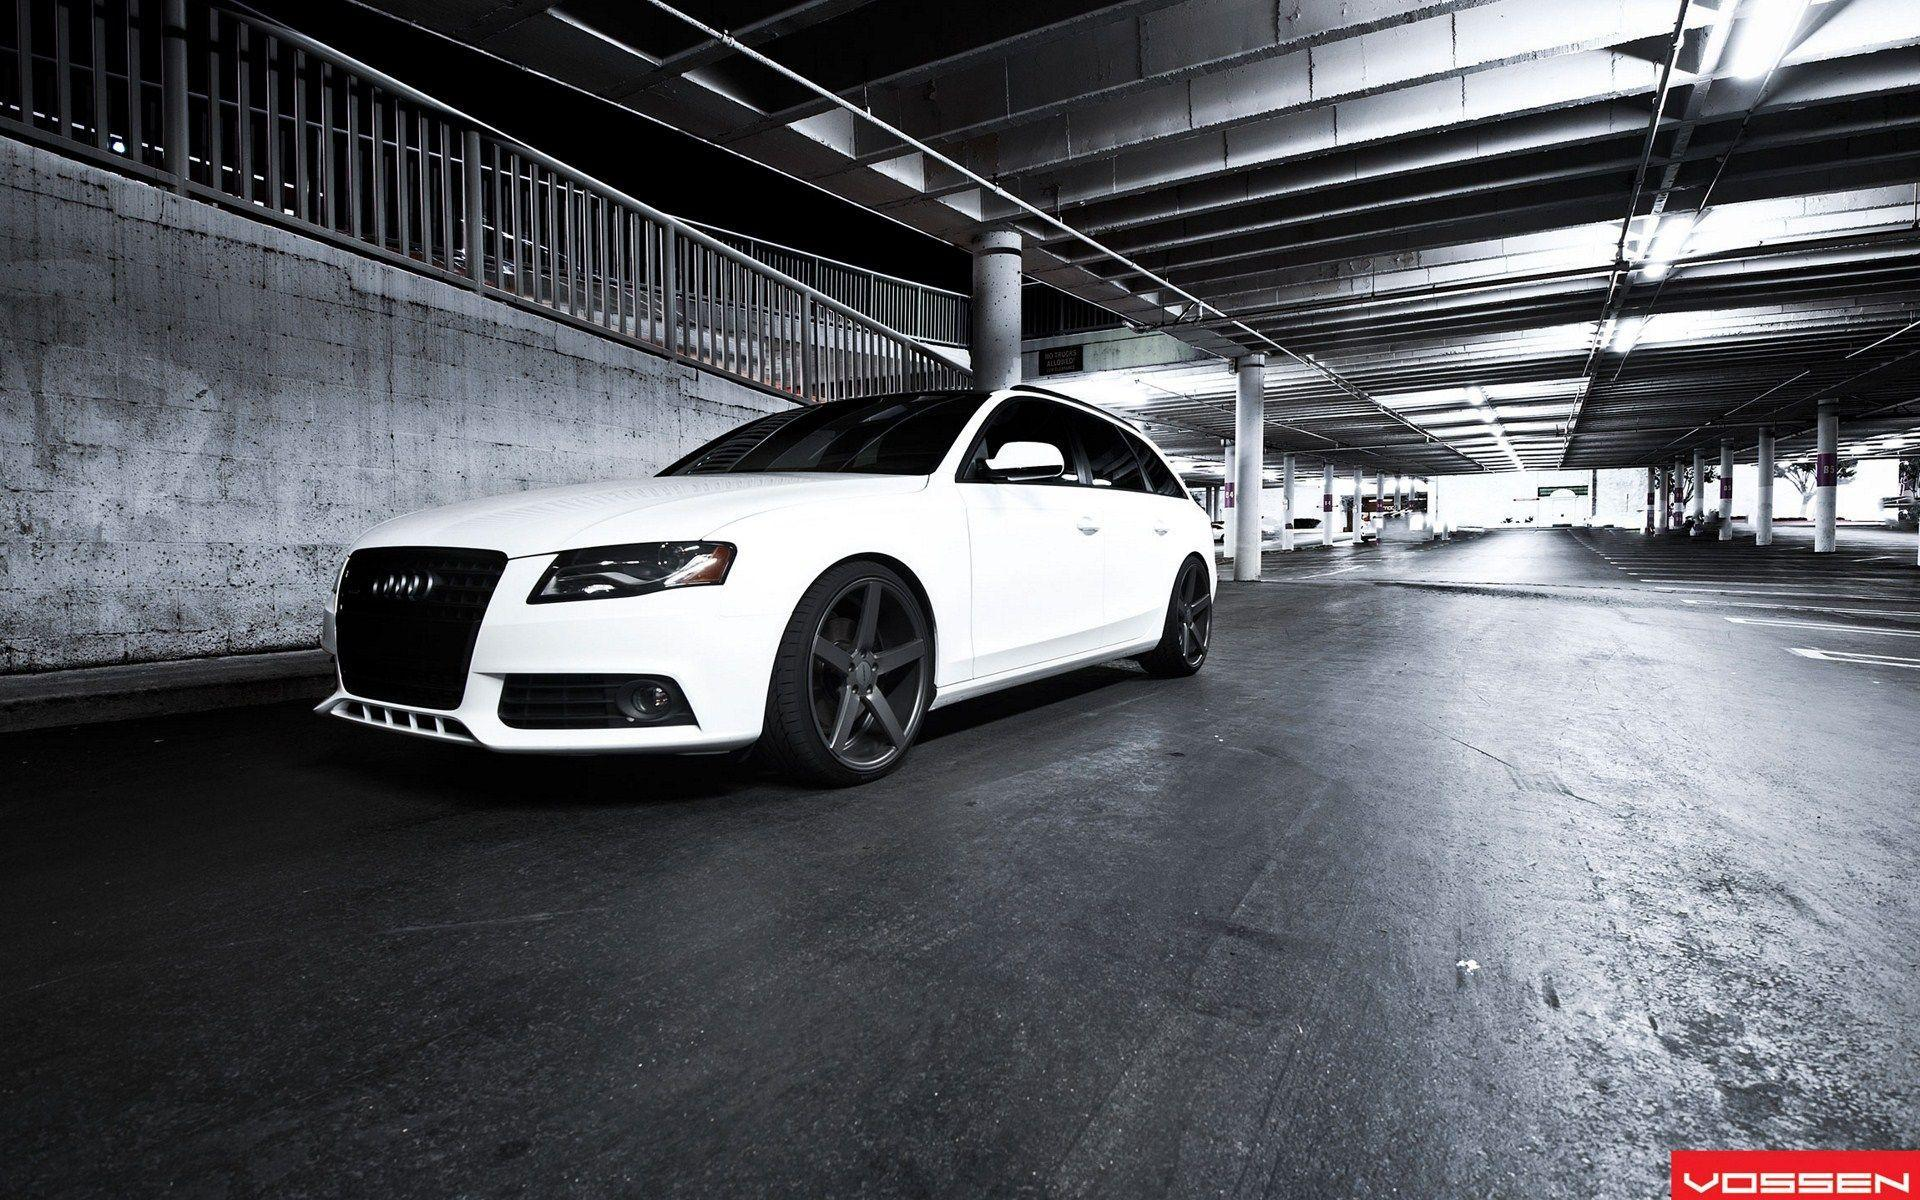 Cars Wallpaper: Audi A4 Wallpapers Desktop Backgrounds for HD